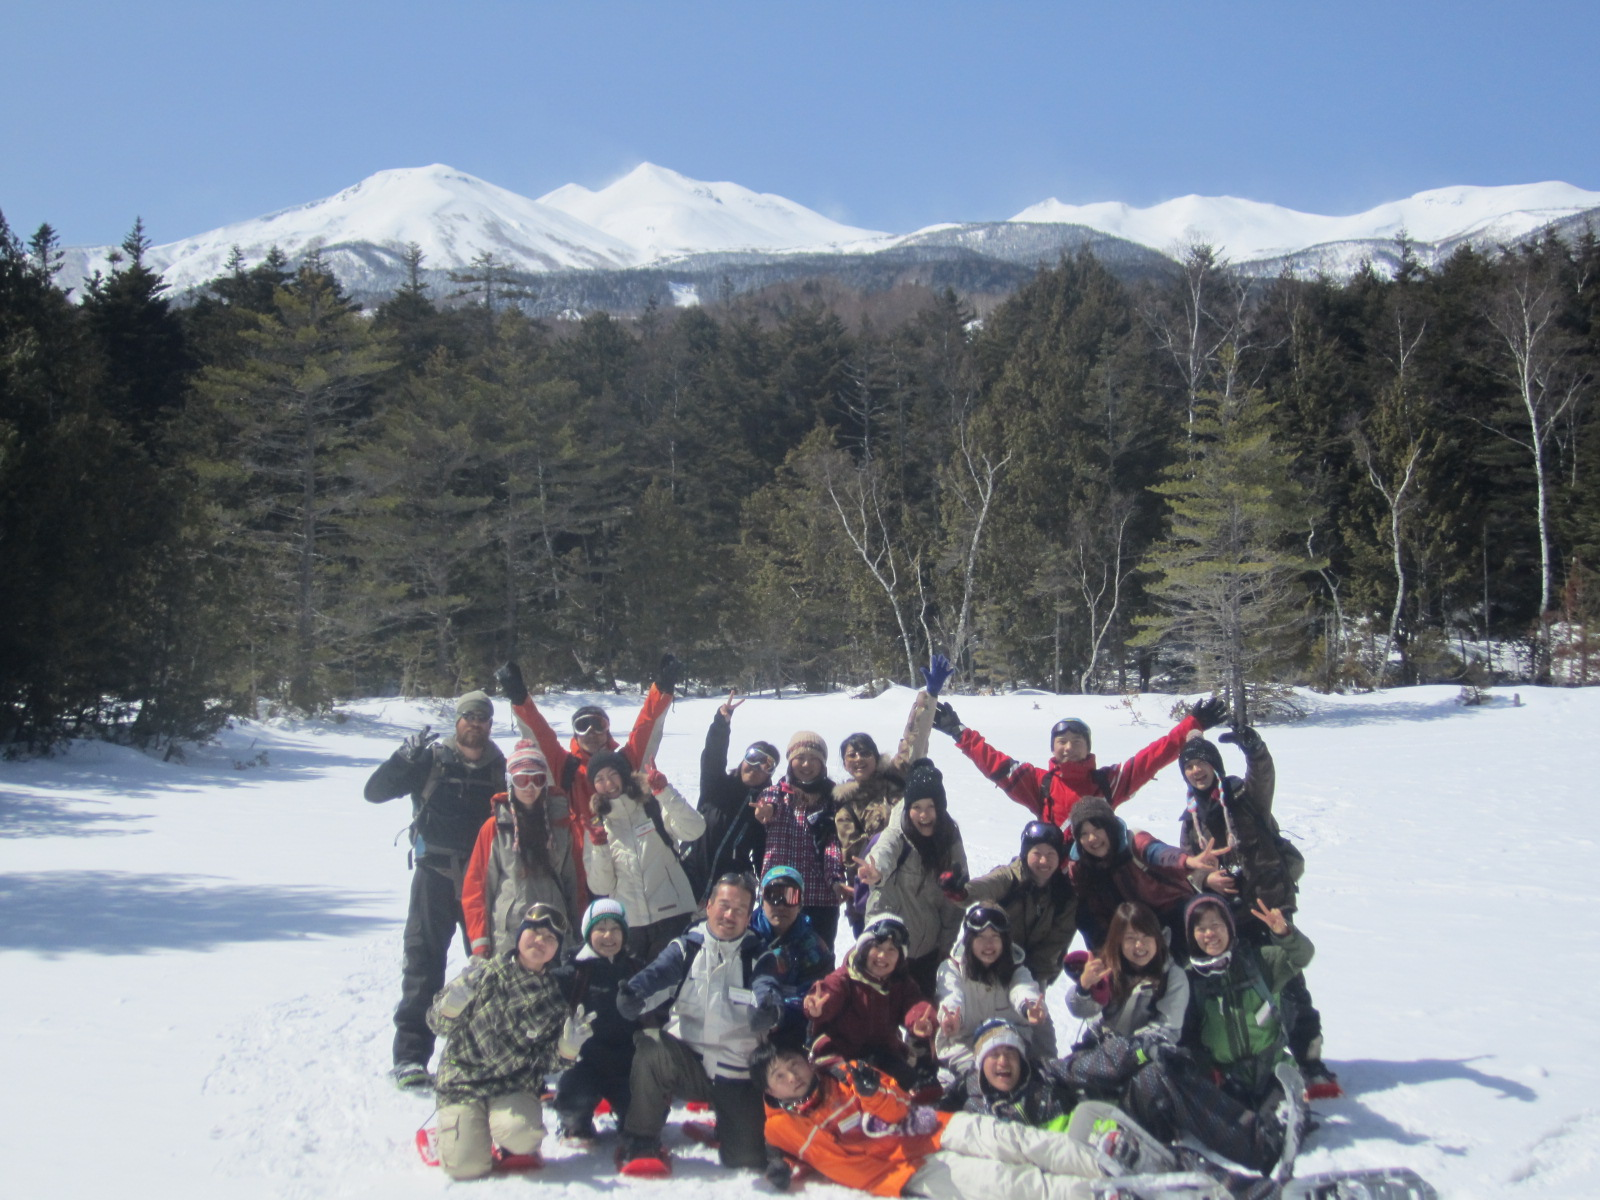 Snowshoeing with 21 guests